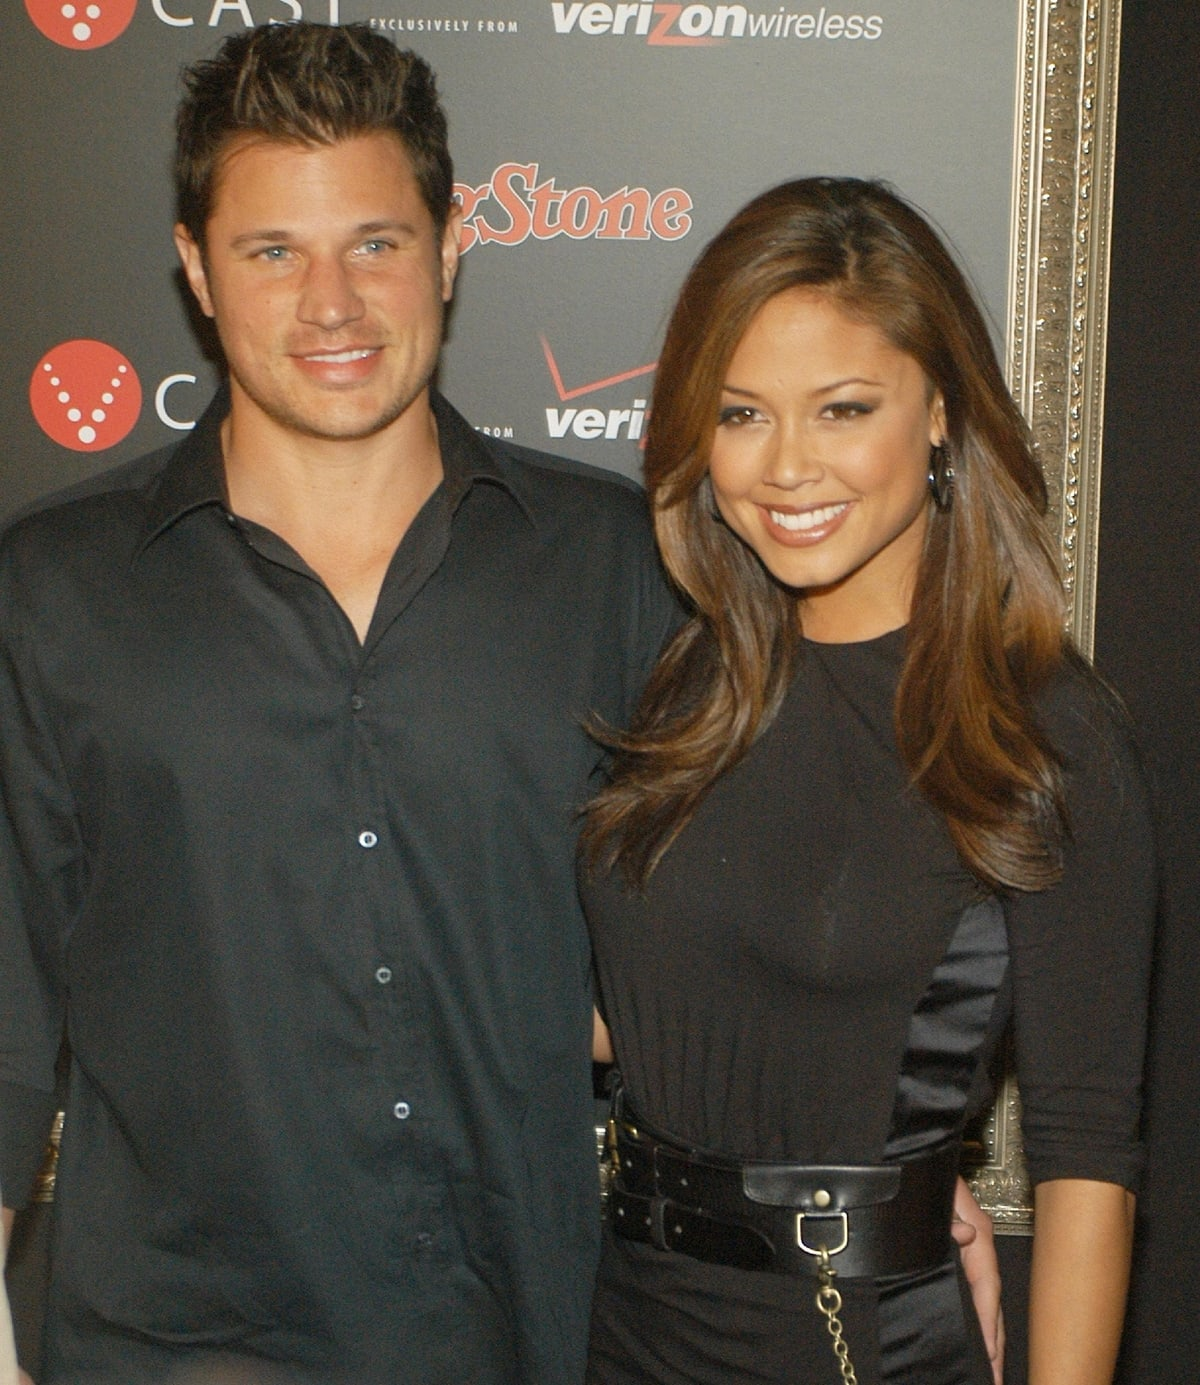 Nick Lachey and Vanessa Minnillo started dating in 2006 and took their romance public in December 2006